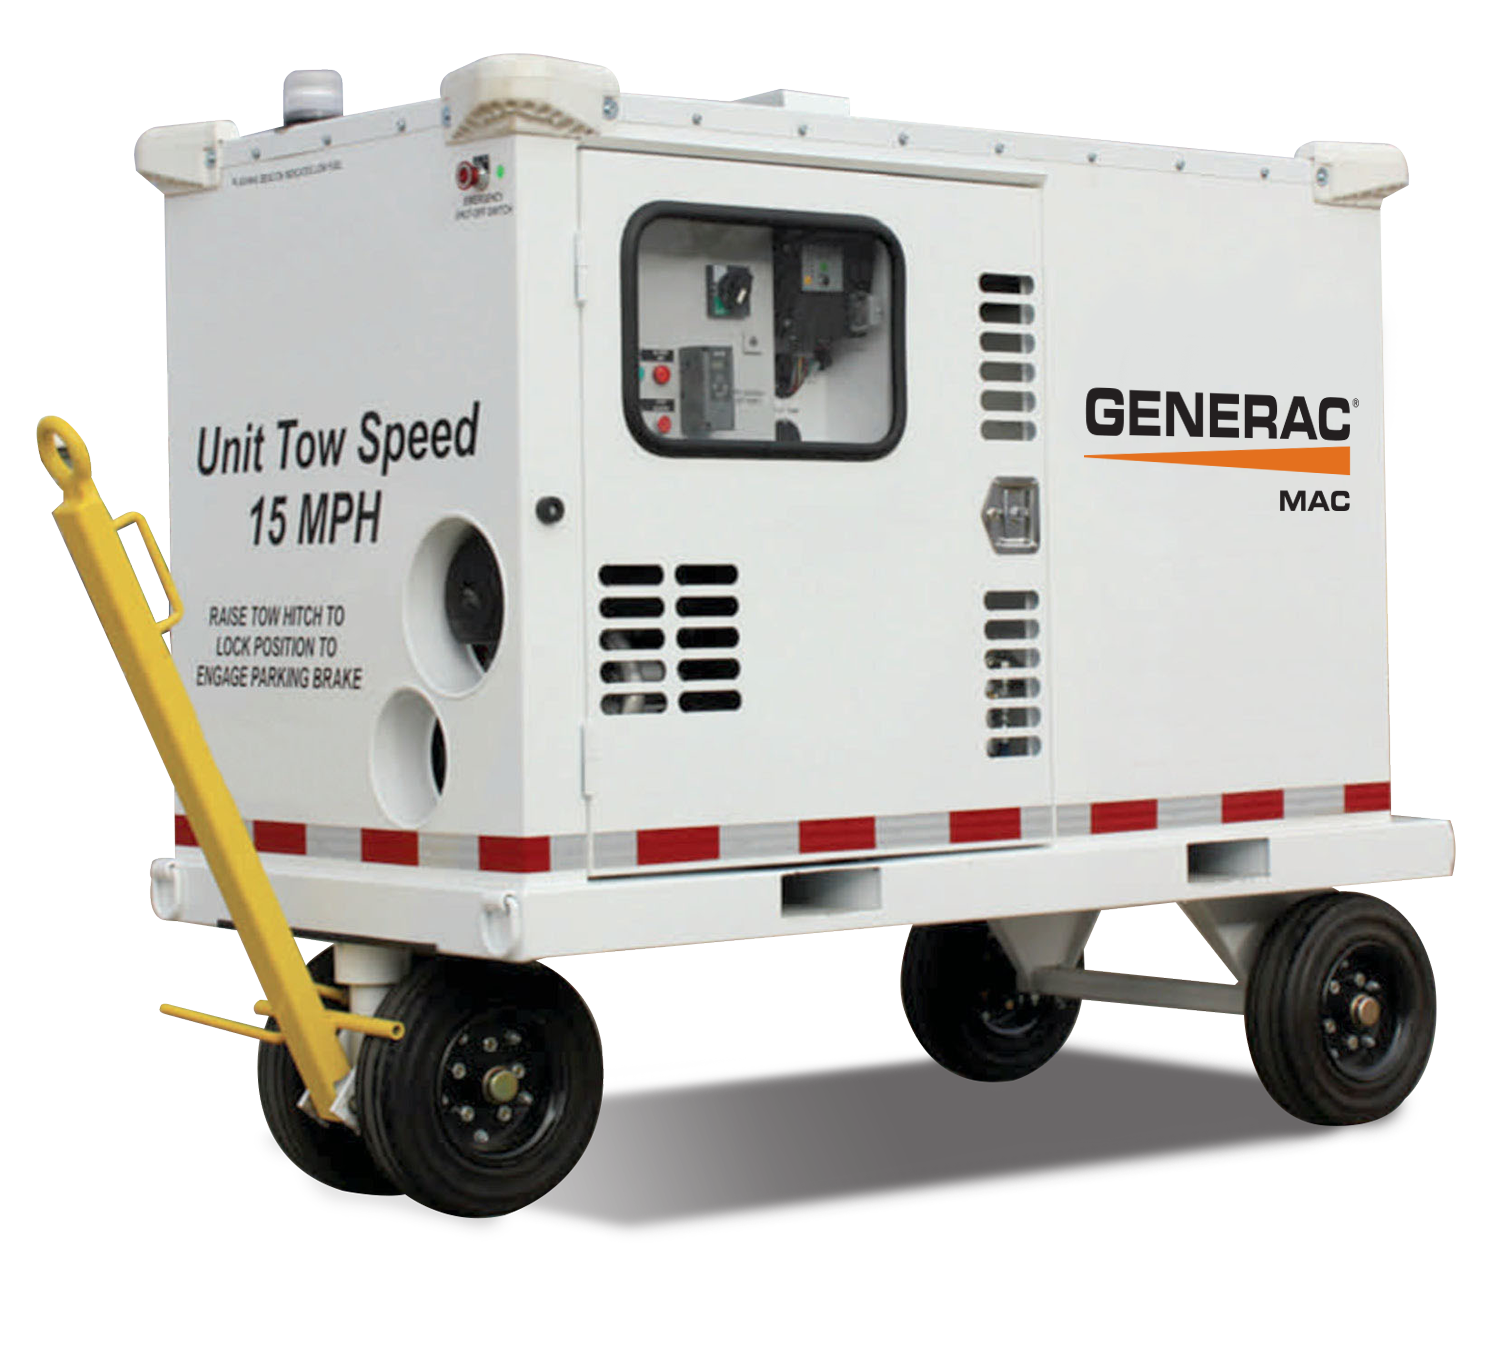 generac mac210hc indirect fired heater heat cart airline